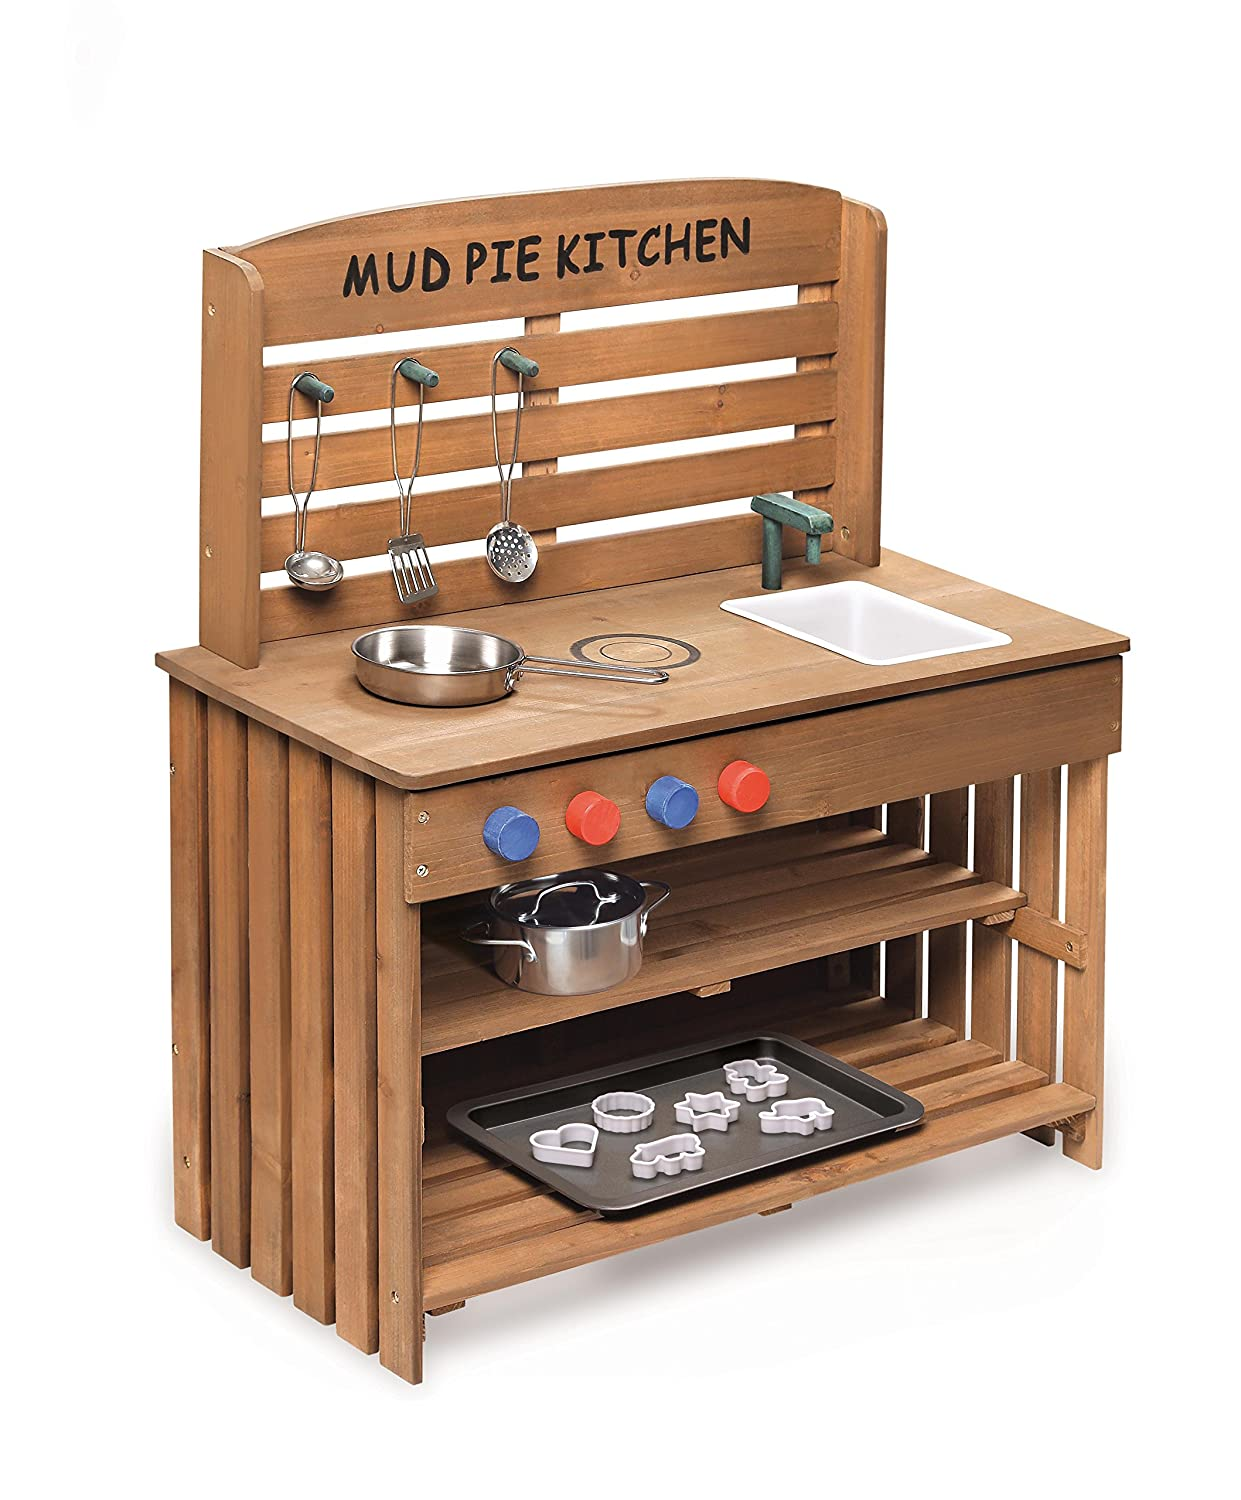 Perfect Amazon.com: Badger Basket Outdoor Chef Mud Pie Kitchen With Cooking  Accessories, Natural: Toys U0026 Games